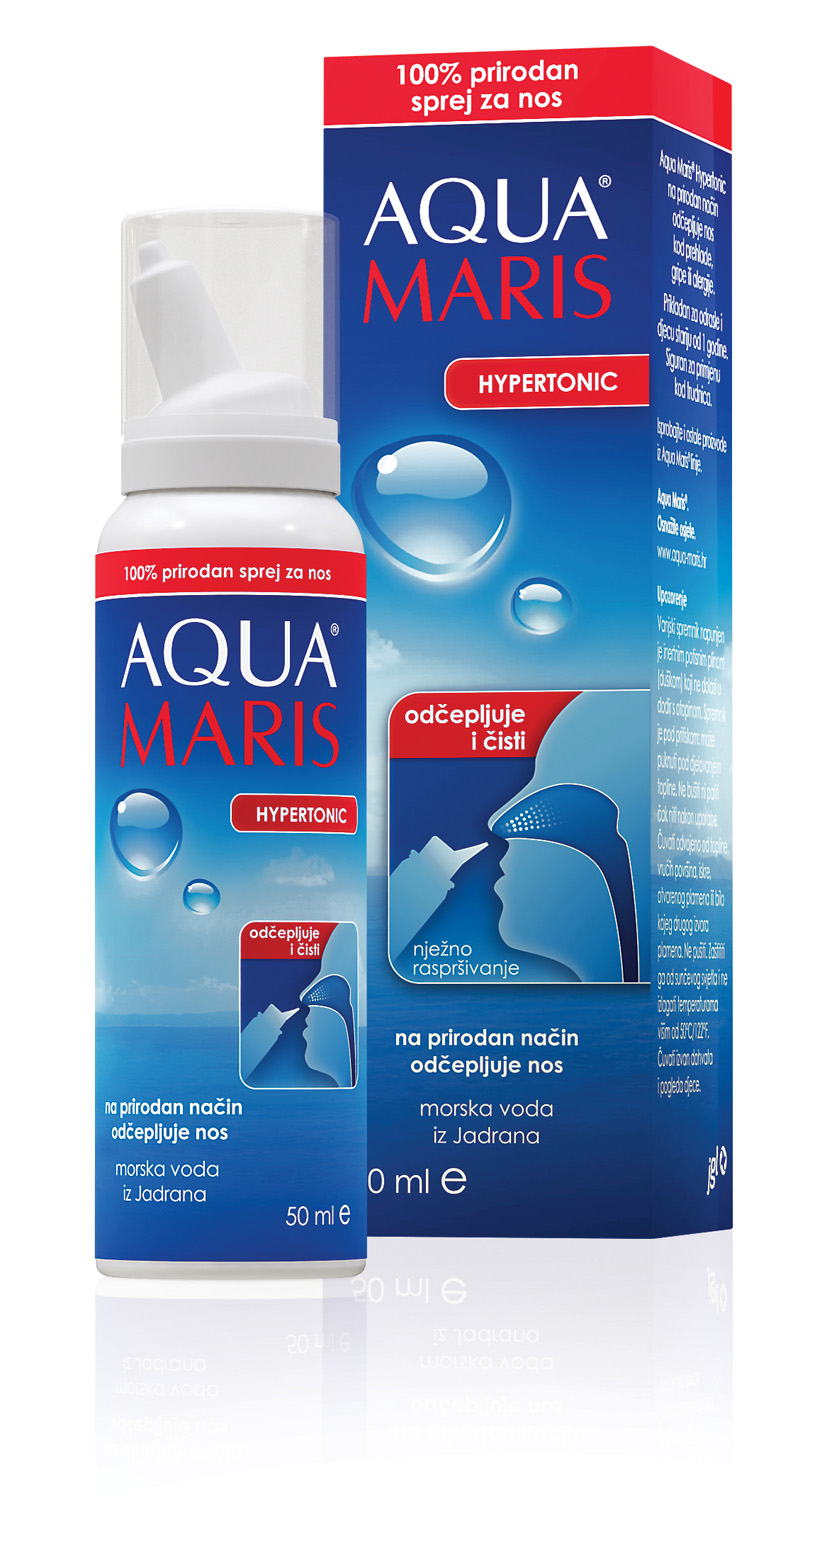 AQUA MARIS HYPERTONIC nasal spray